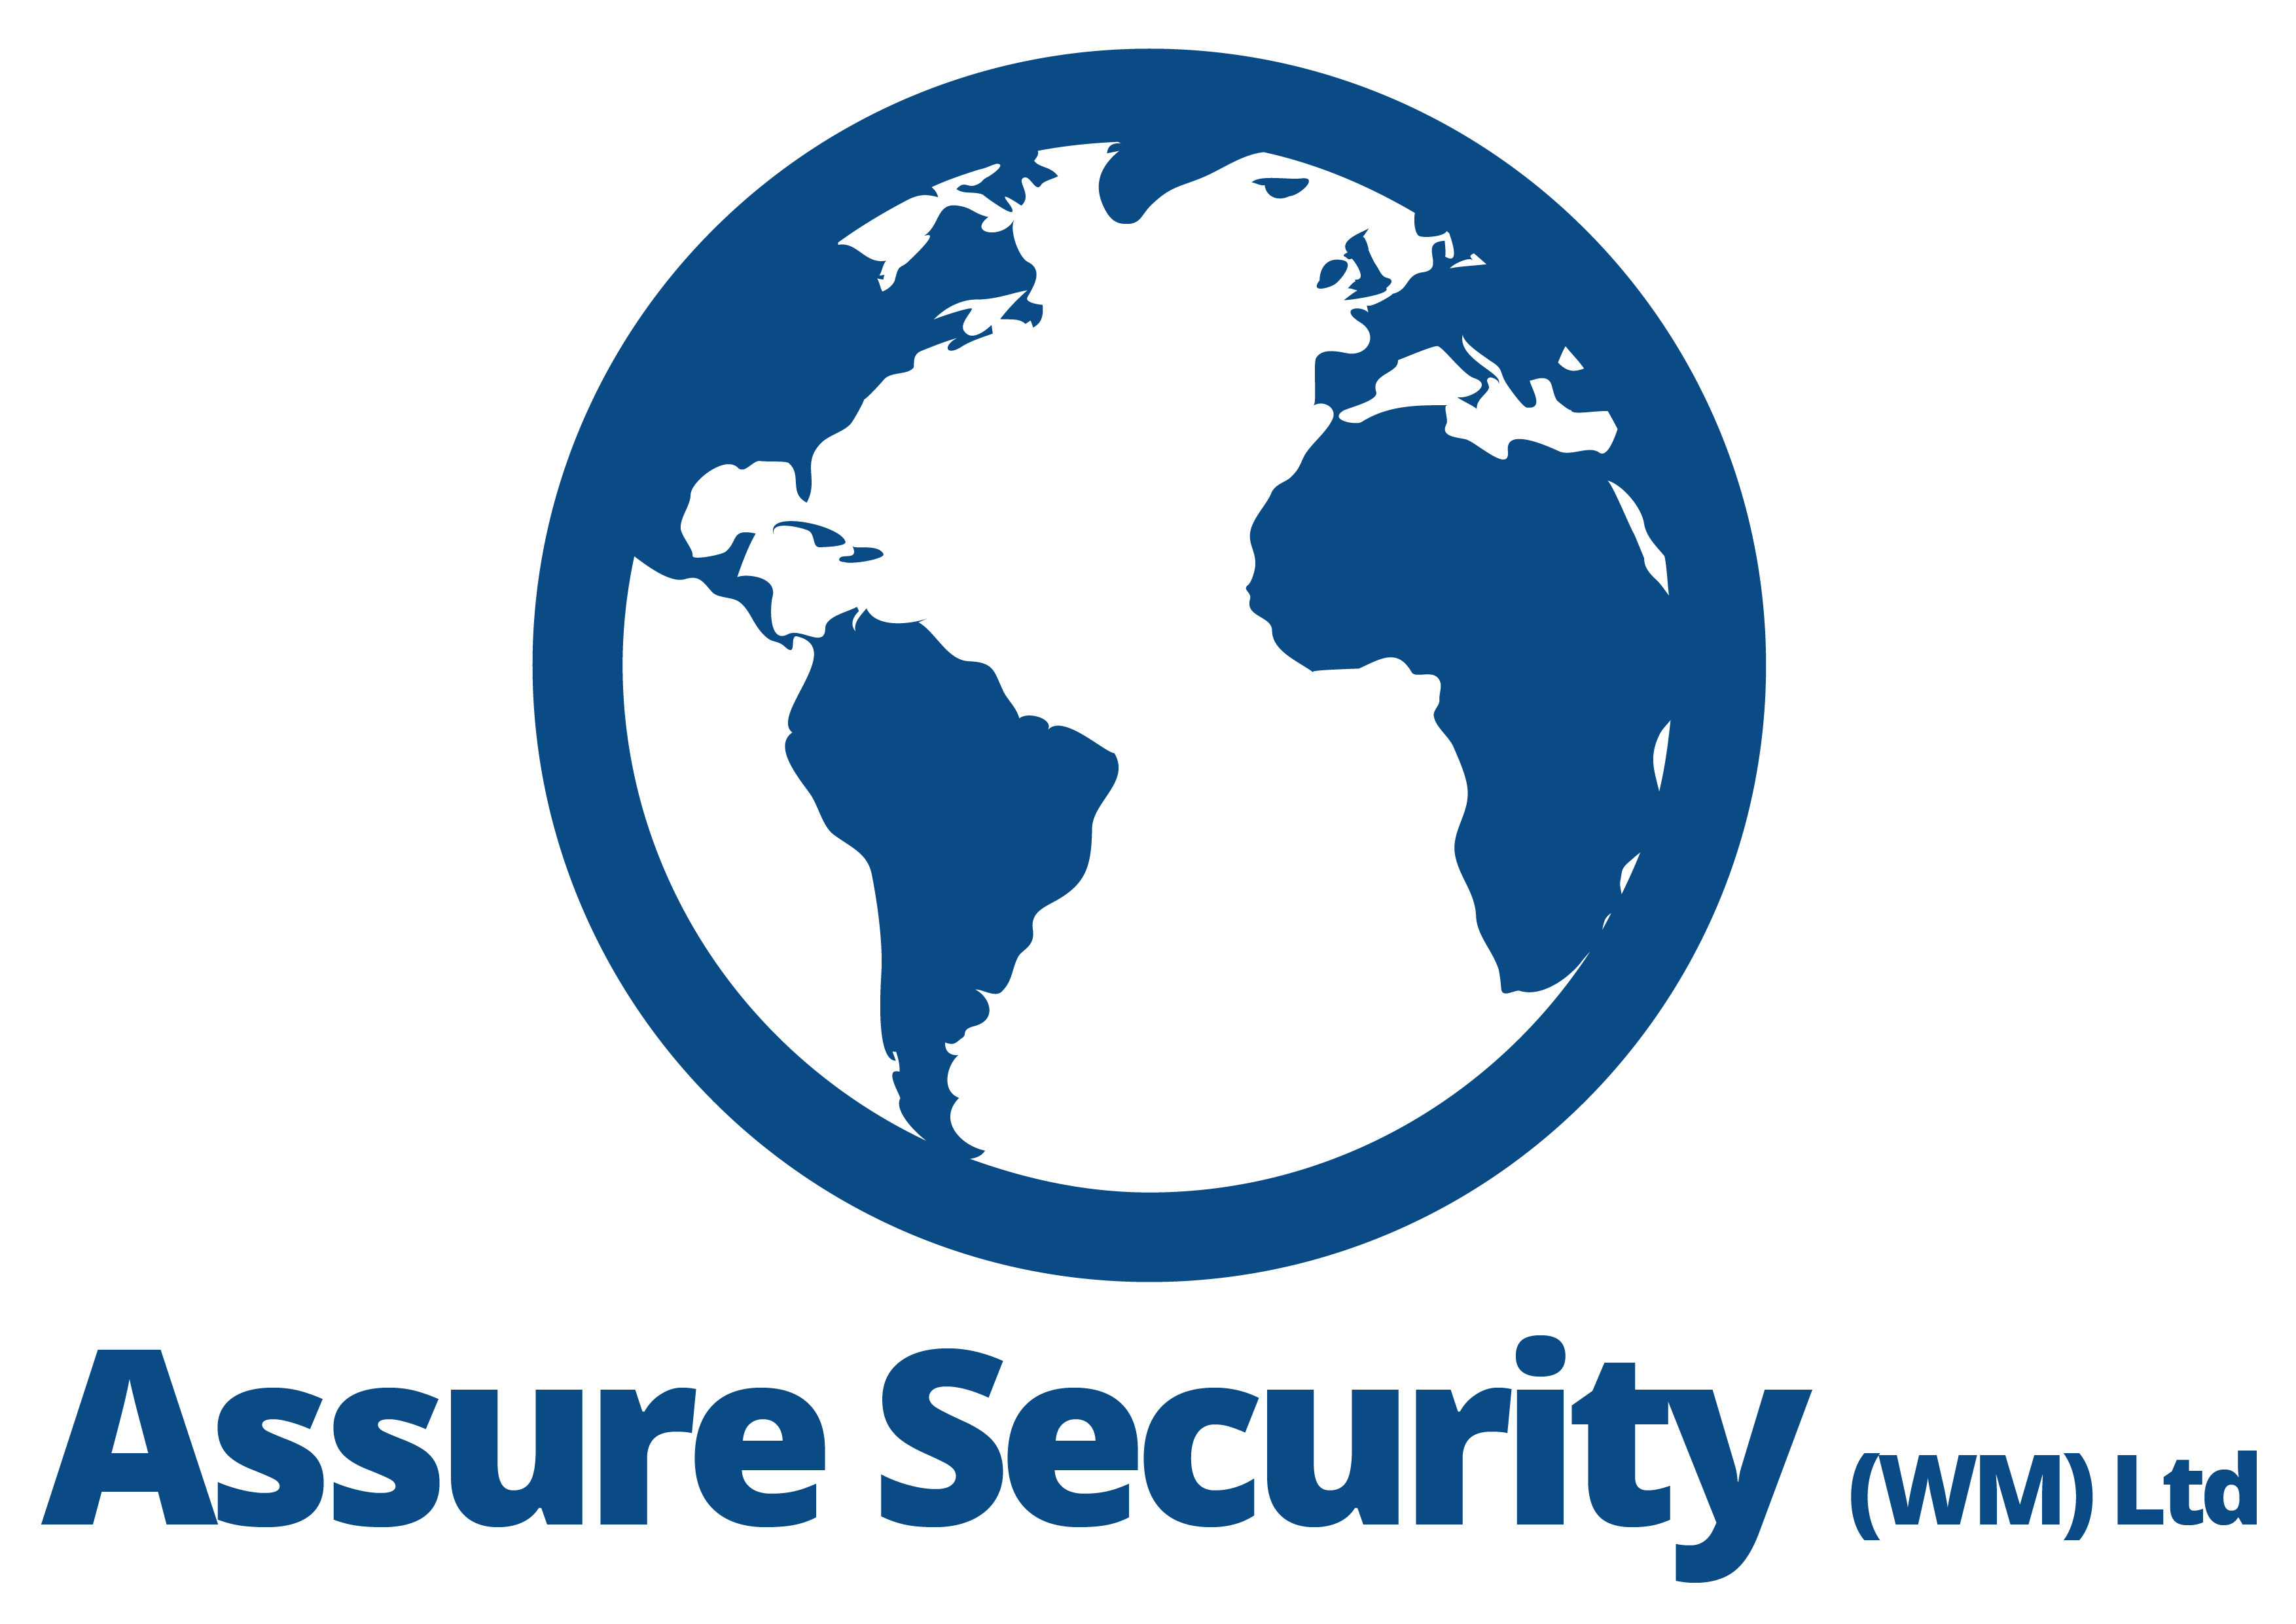 ASSURE SECURITY SERVICES LTD